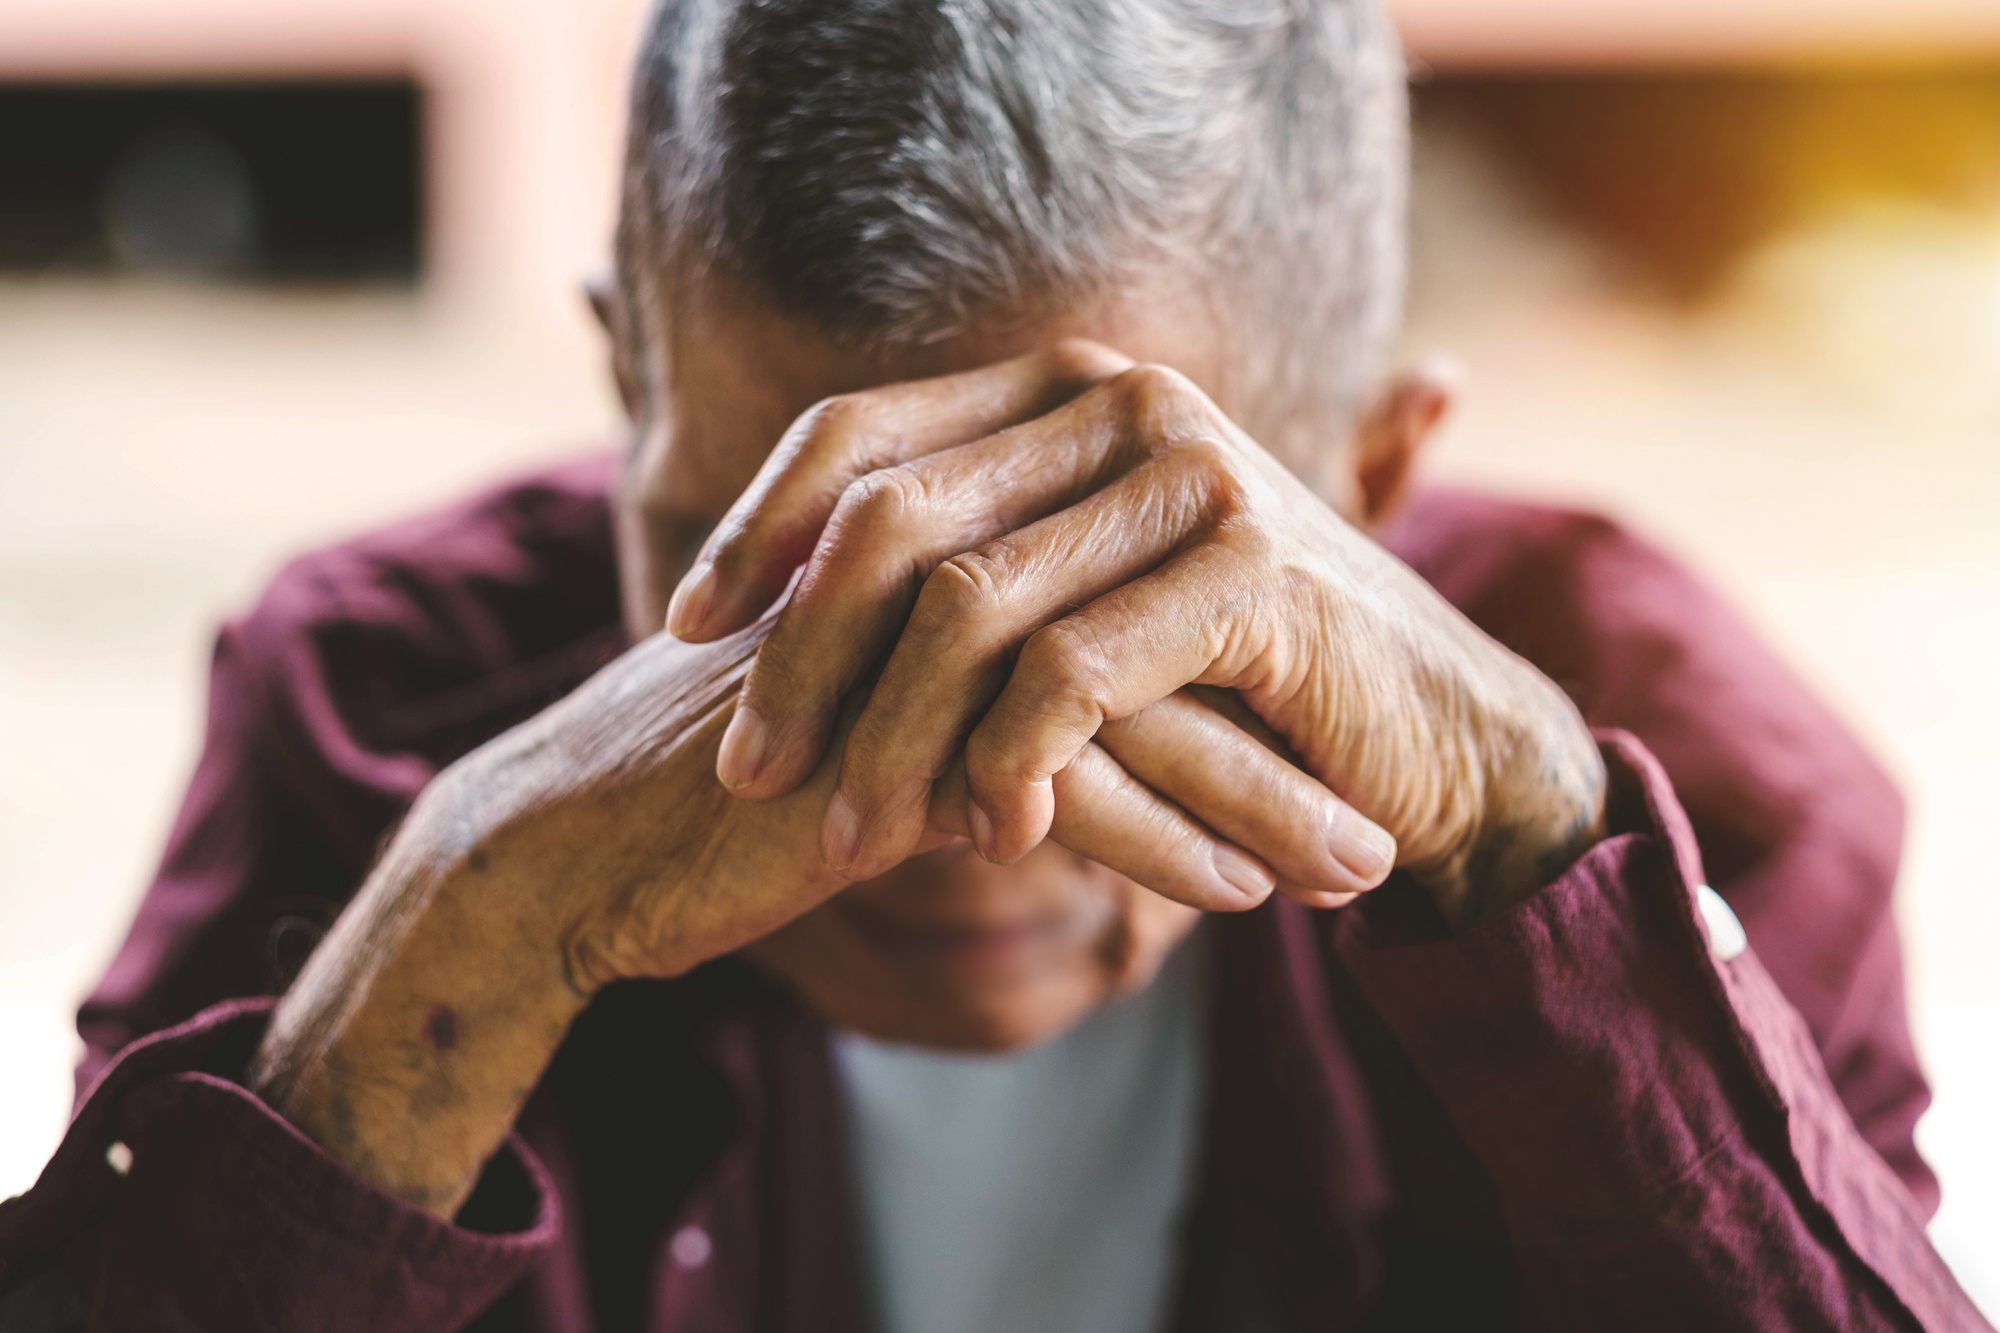 Signs and Symptoms of Elder Abuse